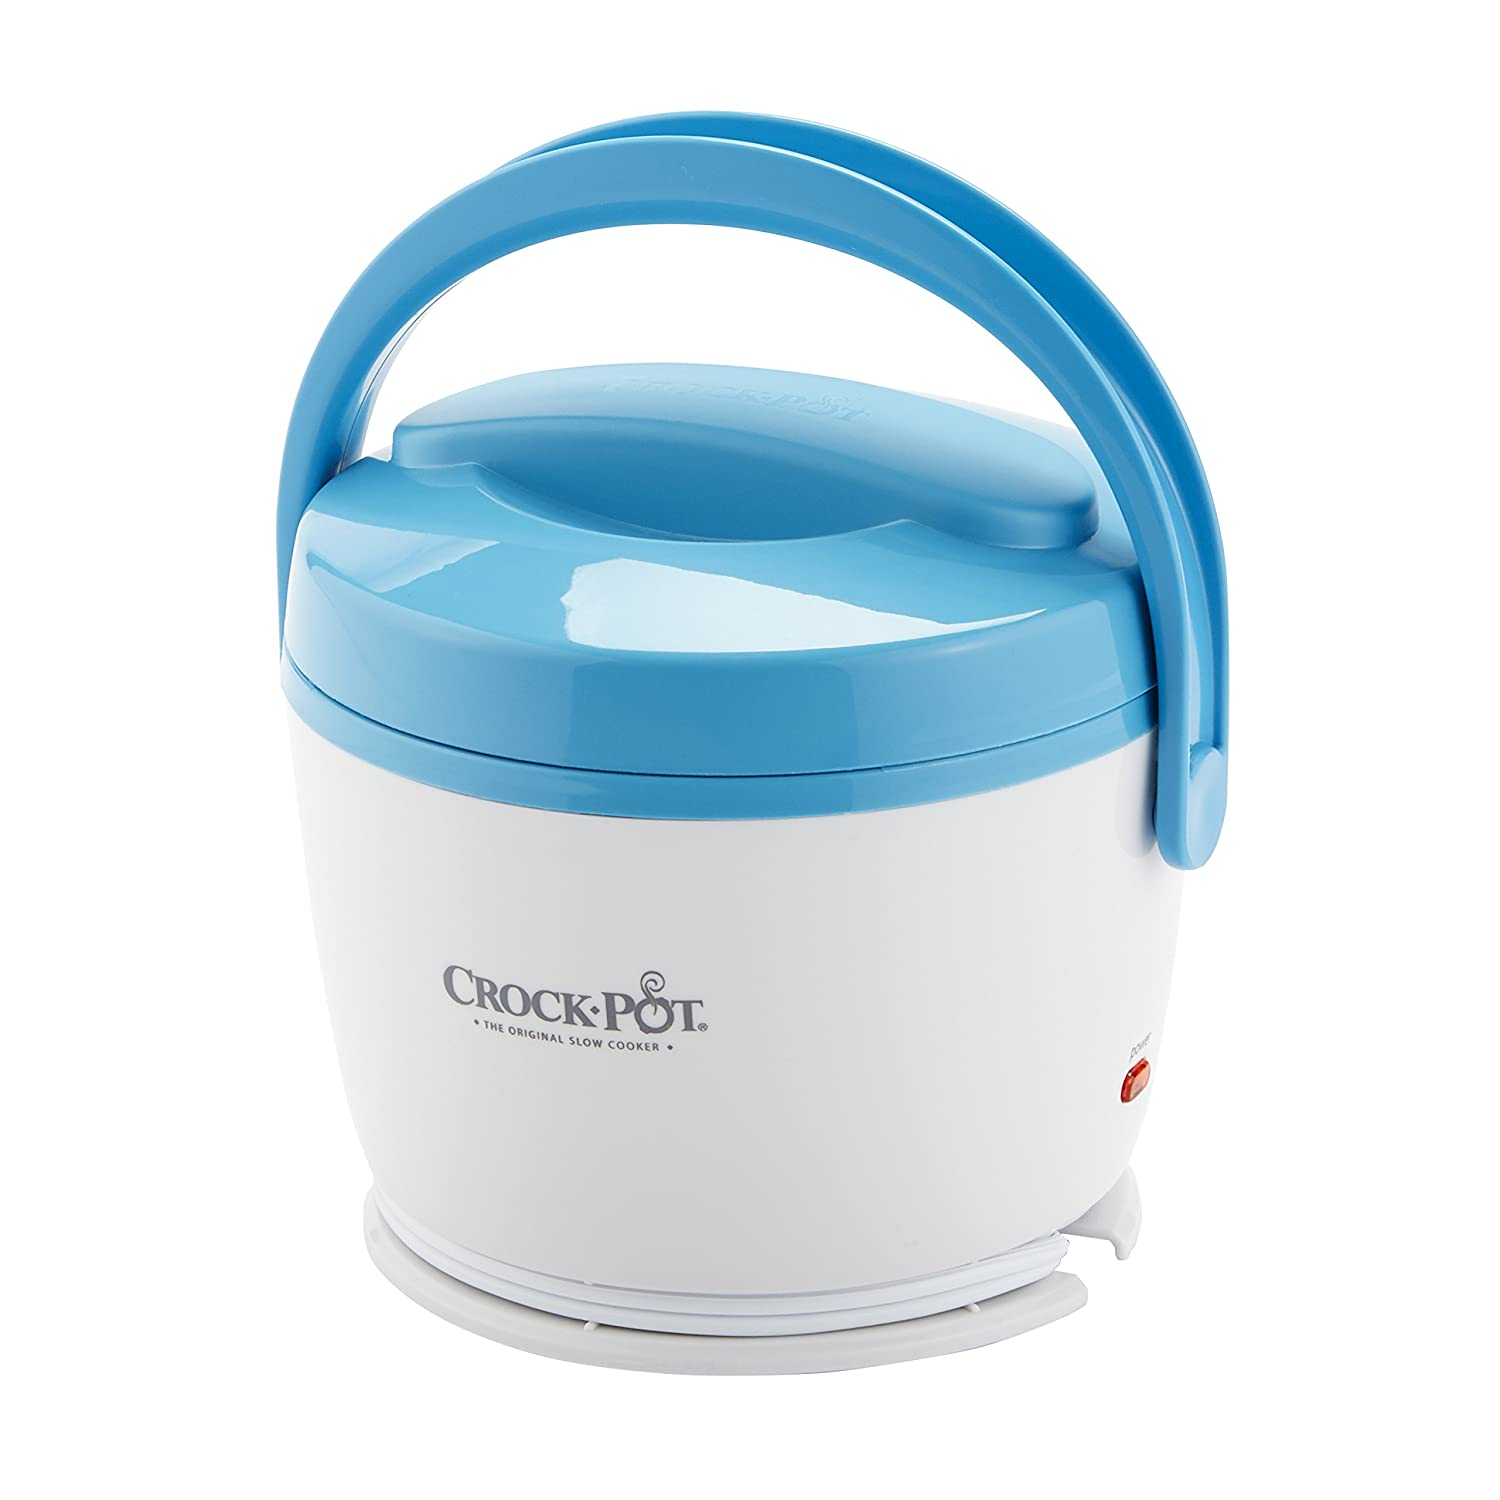 Amazon.com: Crock-Pot Lunch Crock Food Warmer, Blue: Slow Cookers ...